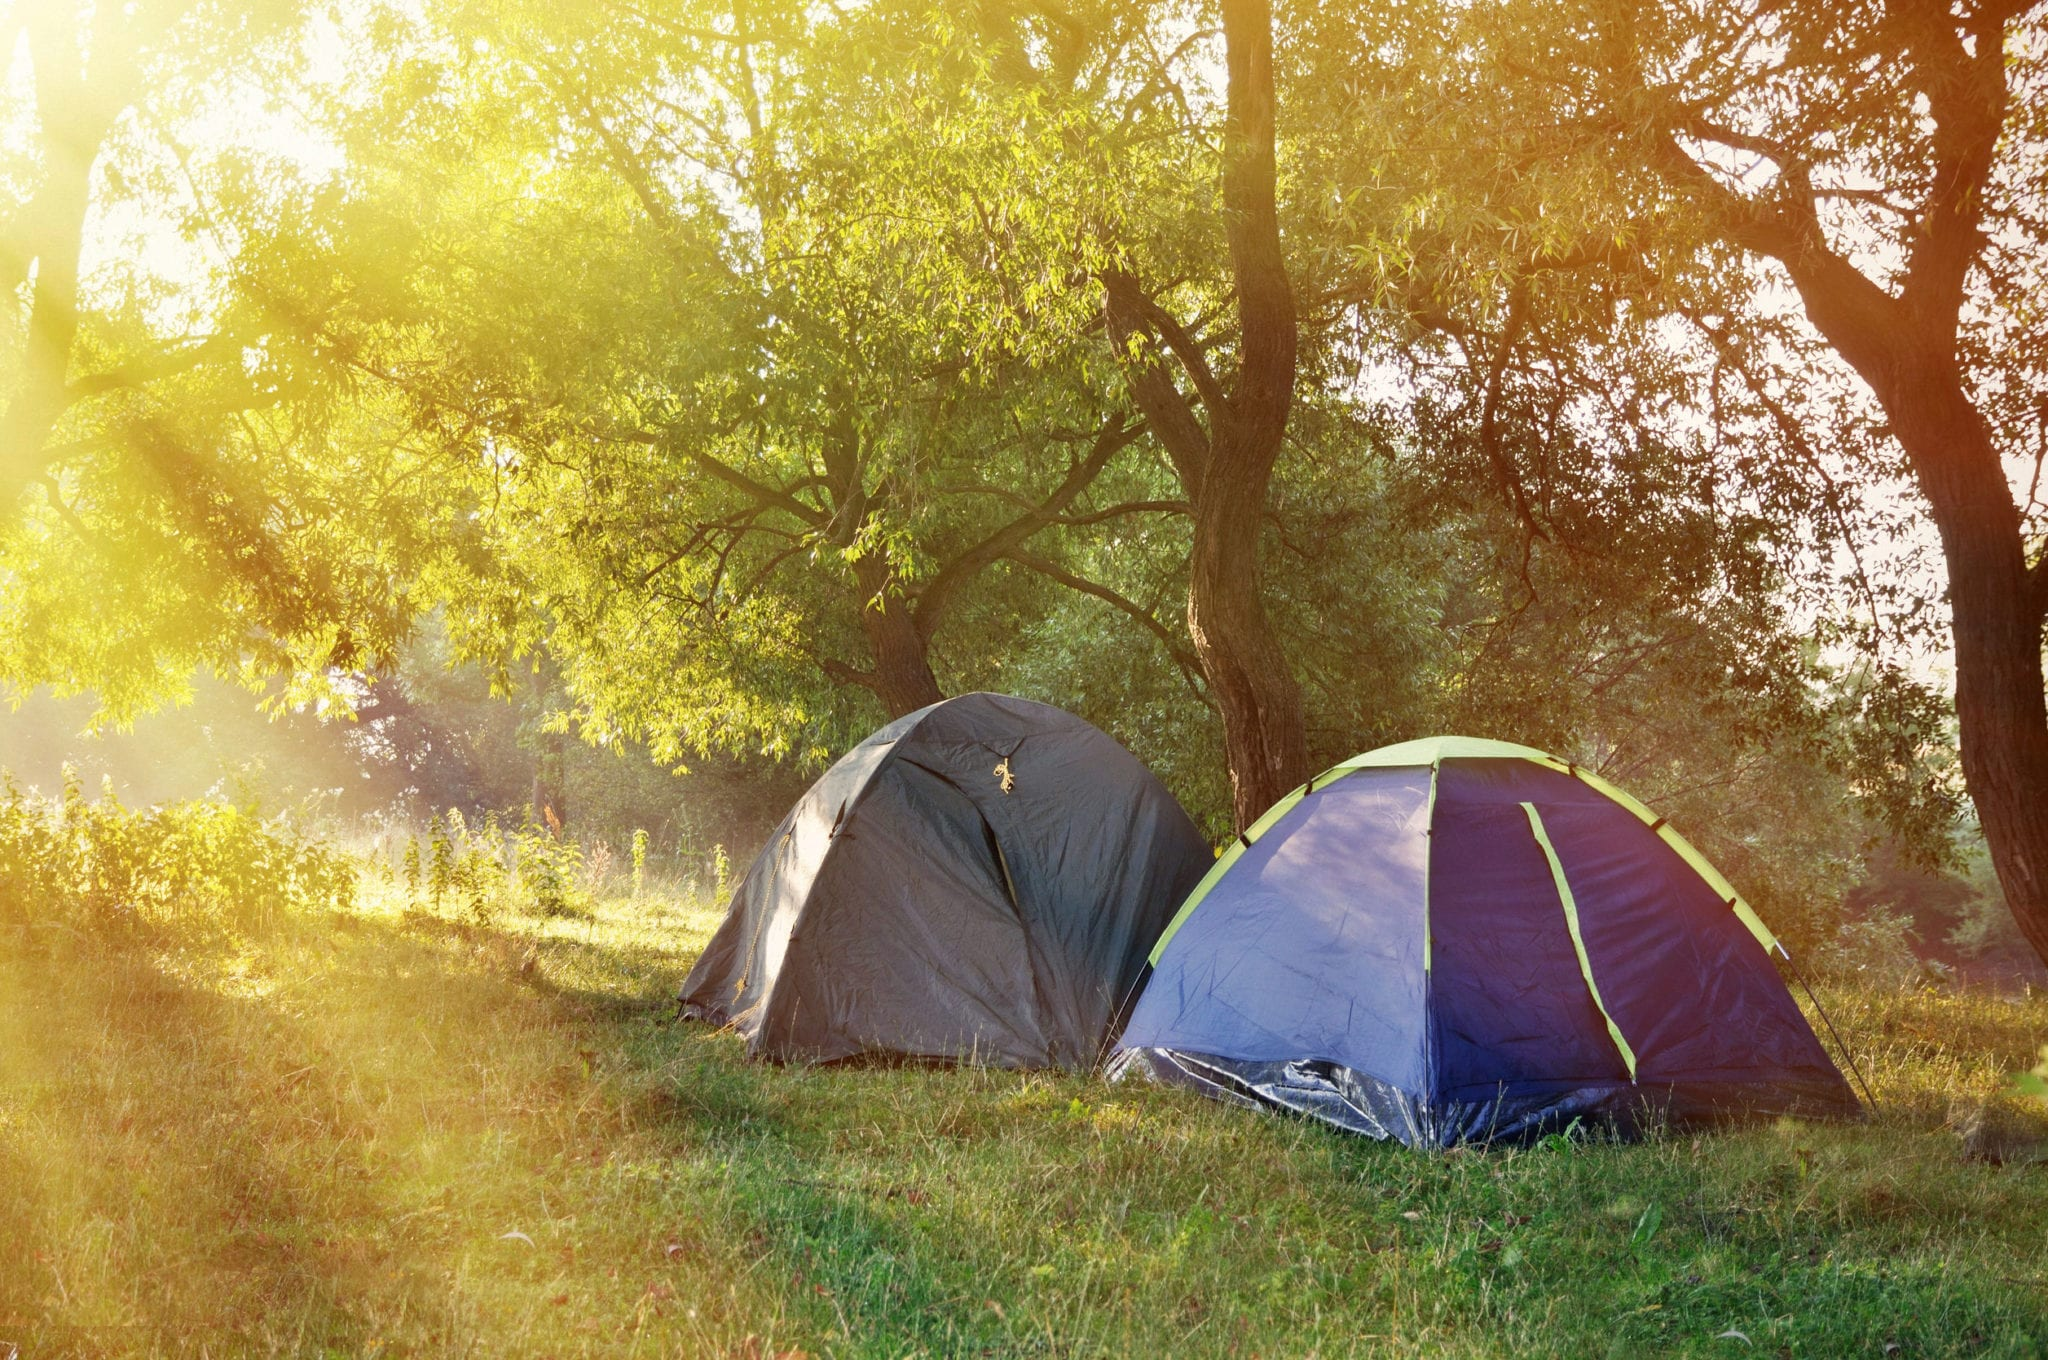 You Can't Camp in Texas Parks Yet without Pre-Booking Your Reservation